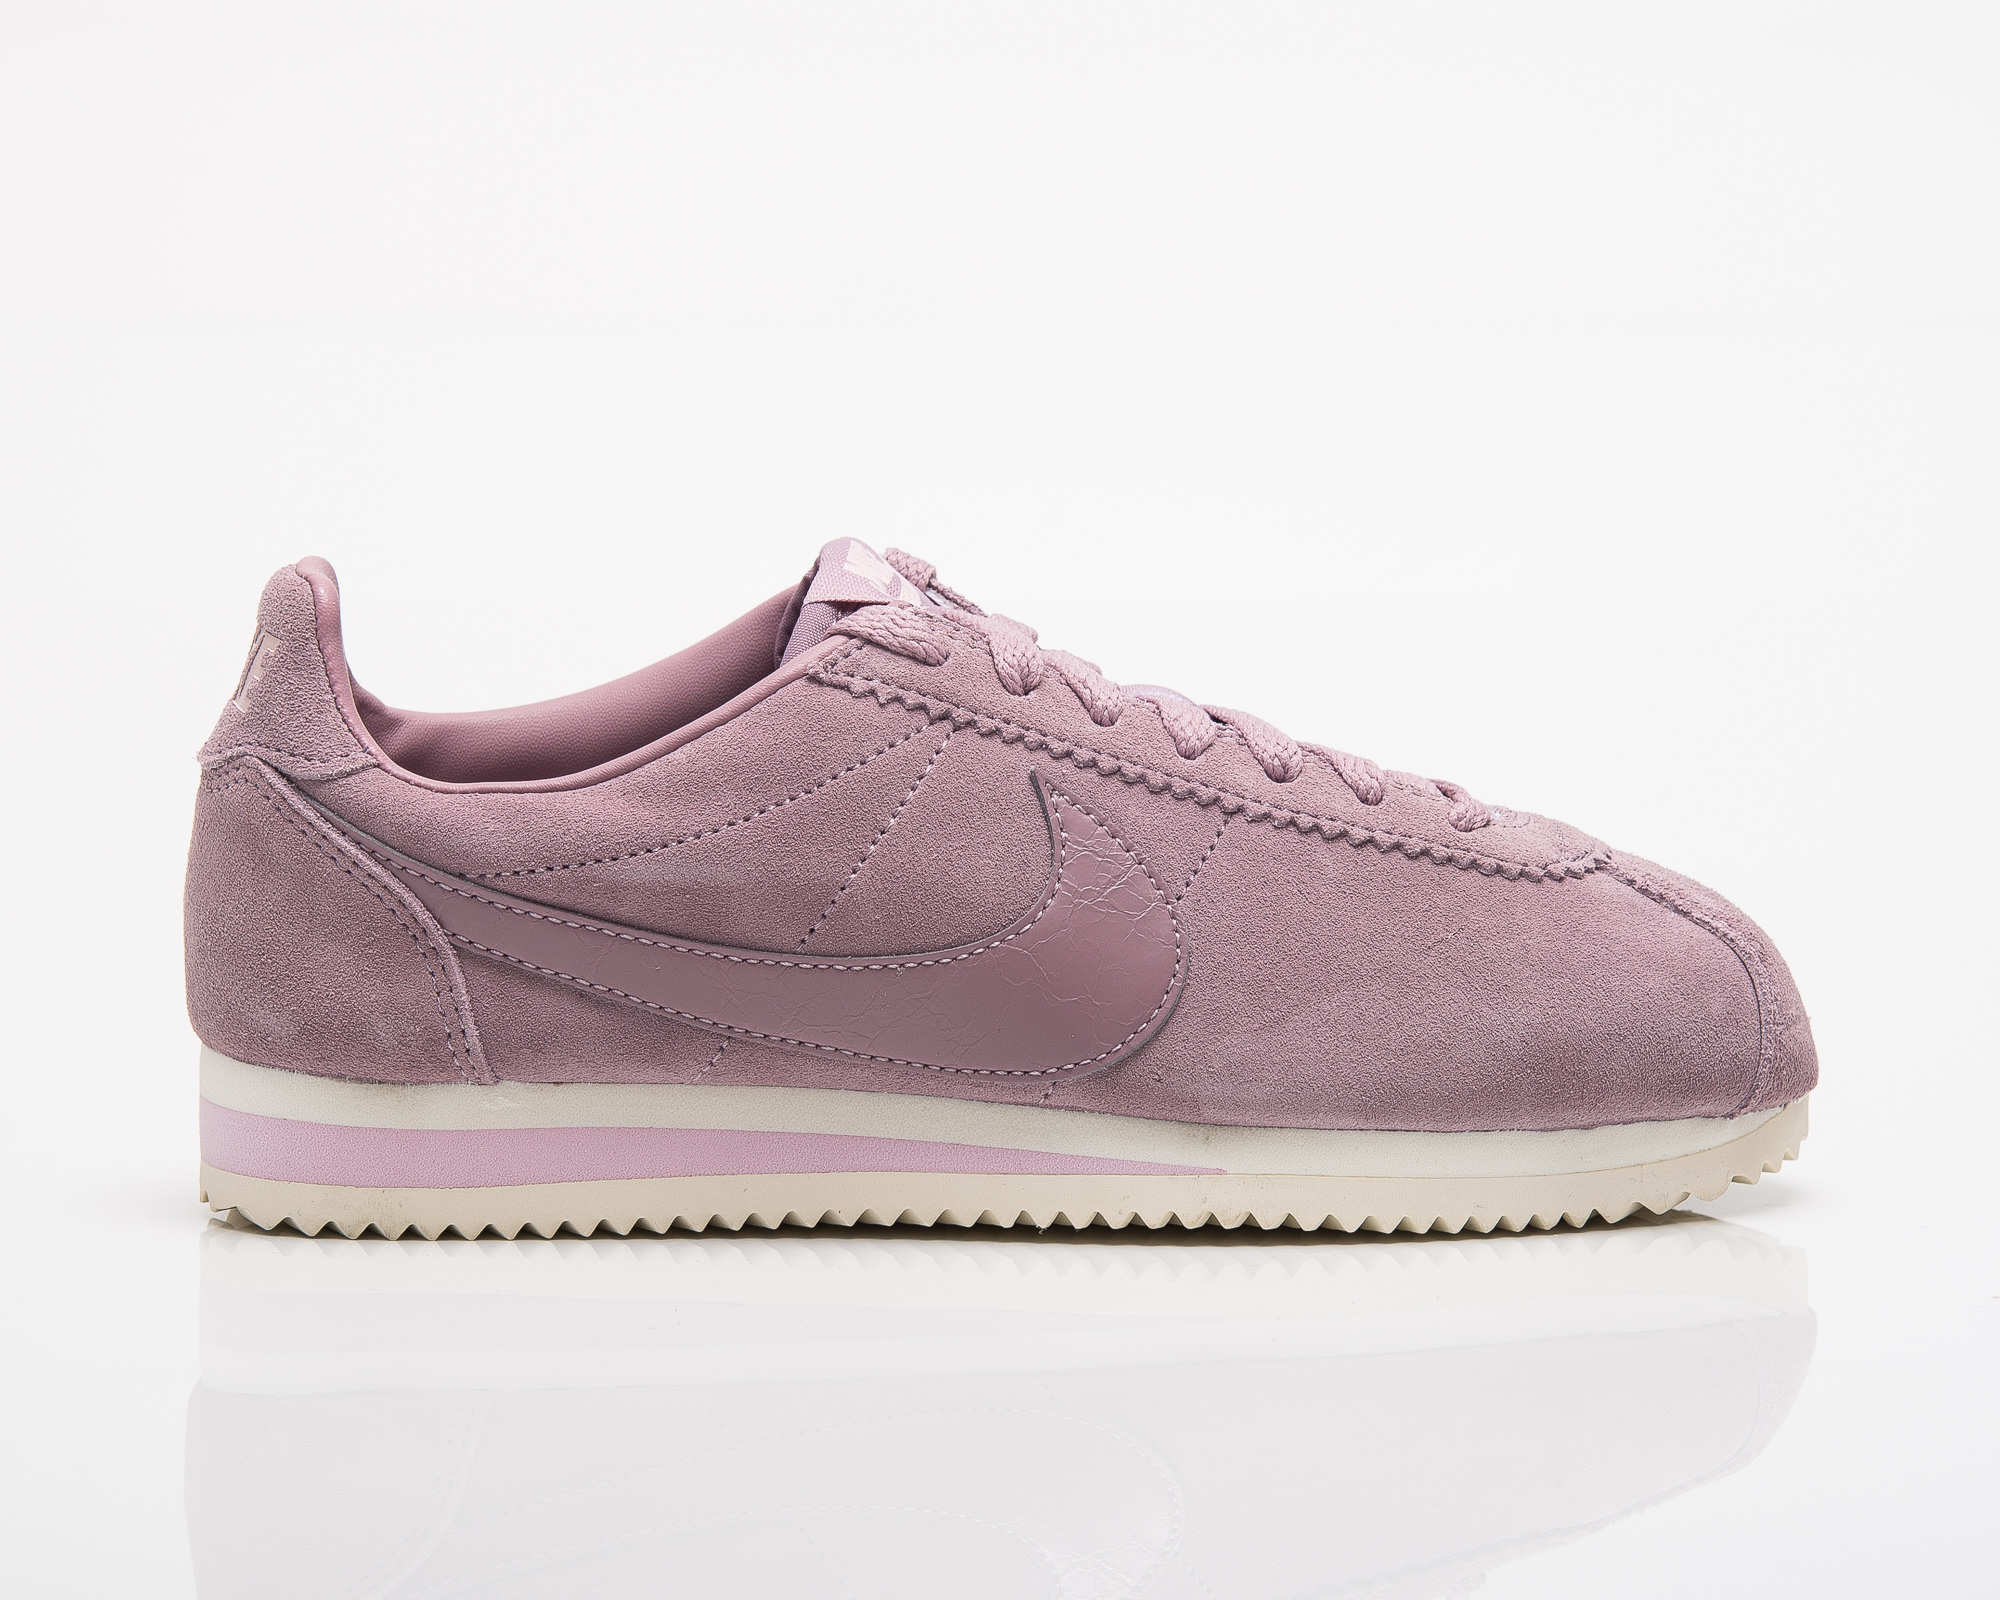 los angeles 35ef3 6657e Nike Wmns Classic Cortez Suede - Shoes Casual - Sporting goods   sil.lt